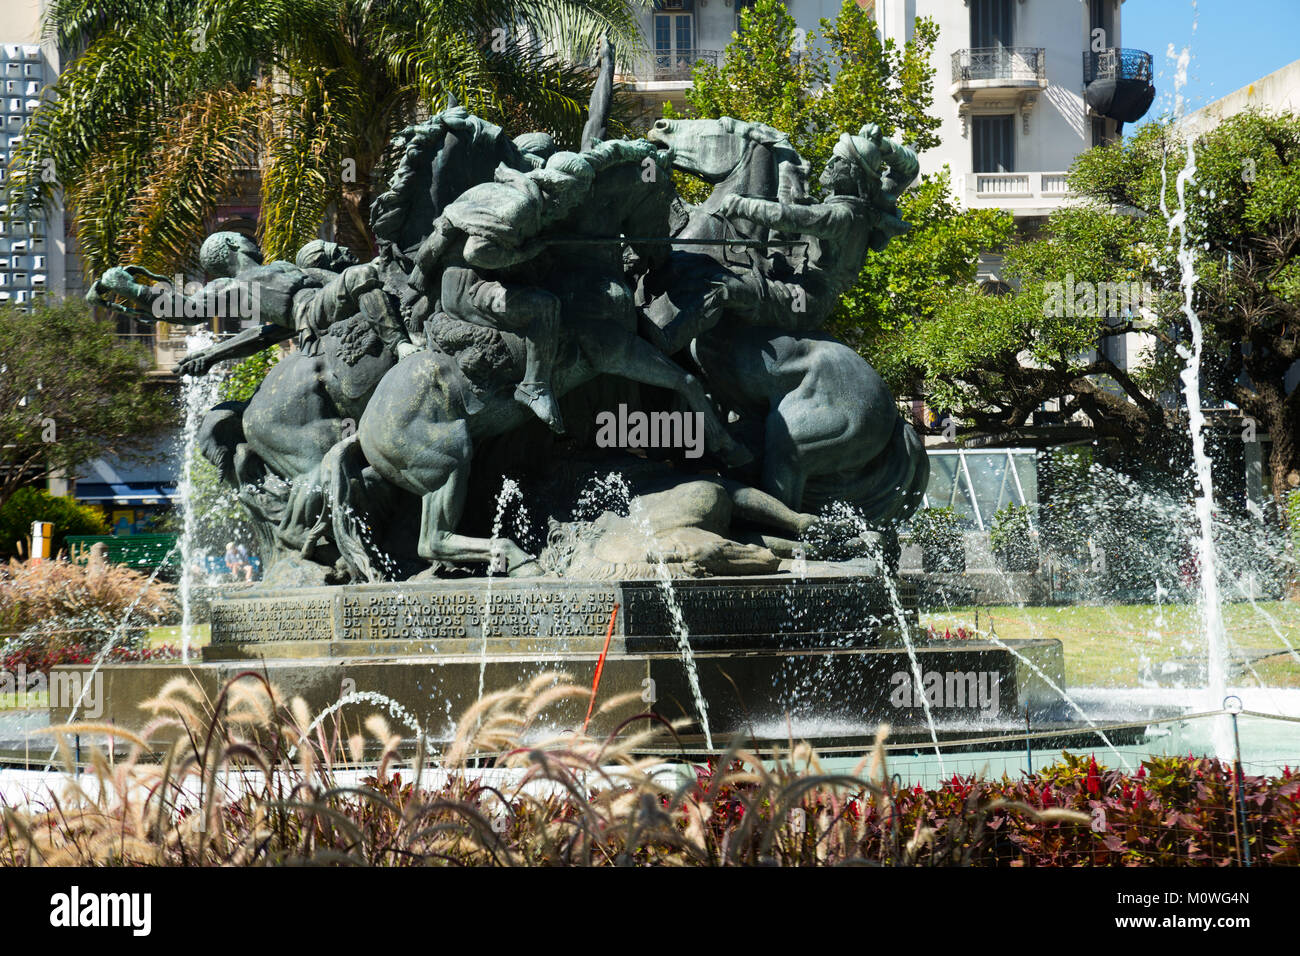 Juan Pedro Fabini square (Plaza Juan Pedro Fabini) with historic memorial to heroes and fountain in Montevideo. Stock Photo